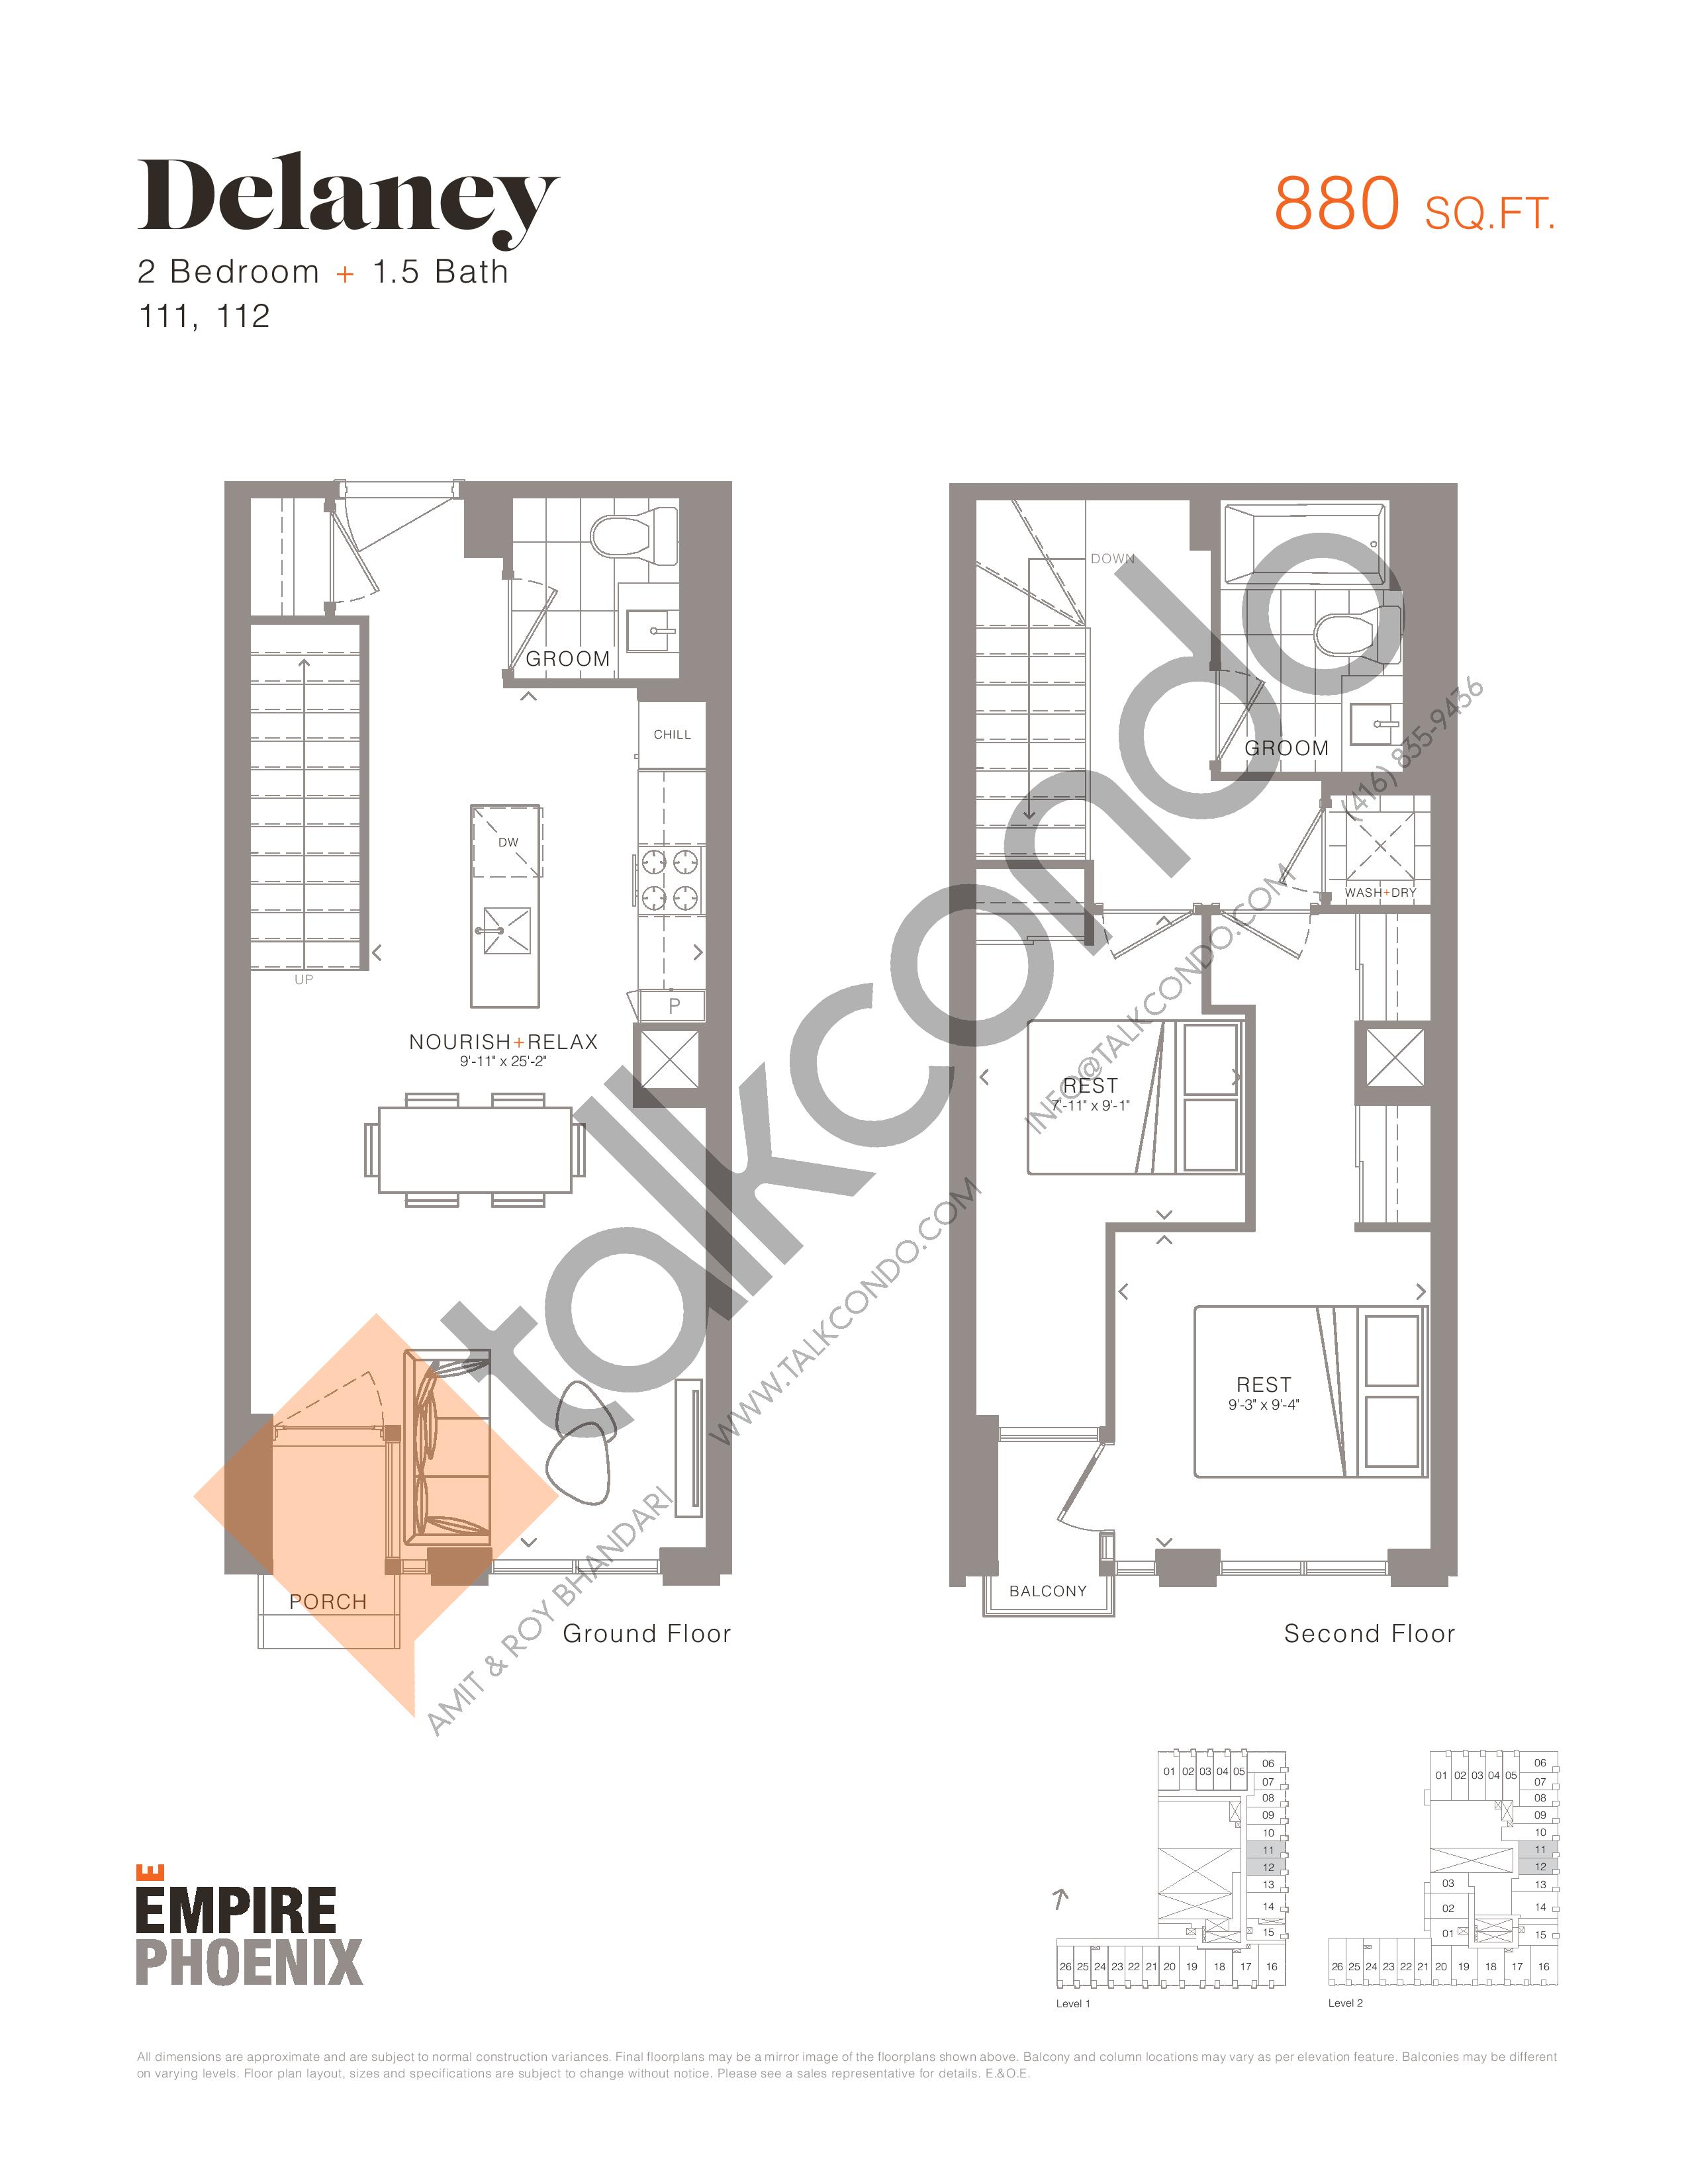 Delaney - Garden Suites Floor Plan at Empire Phoenix Condos - 880 sq.ft